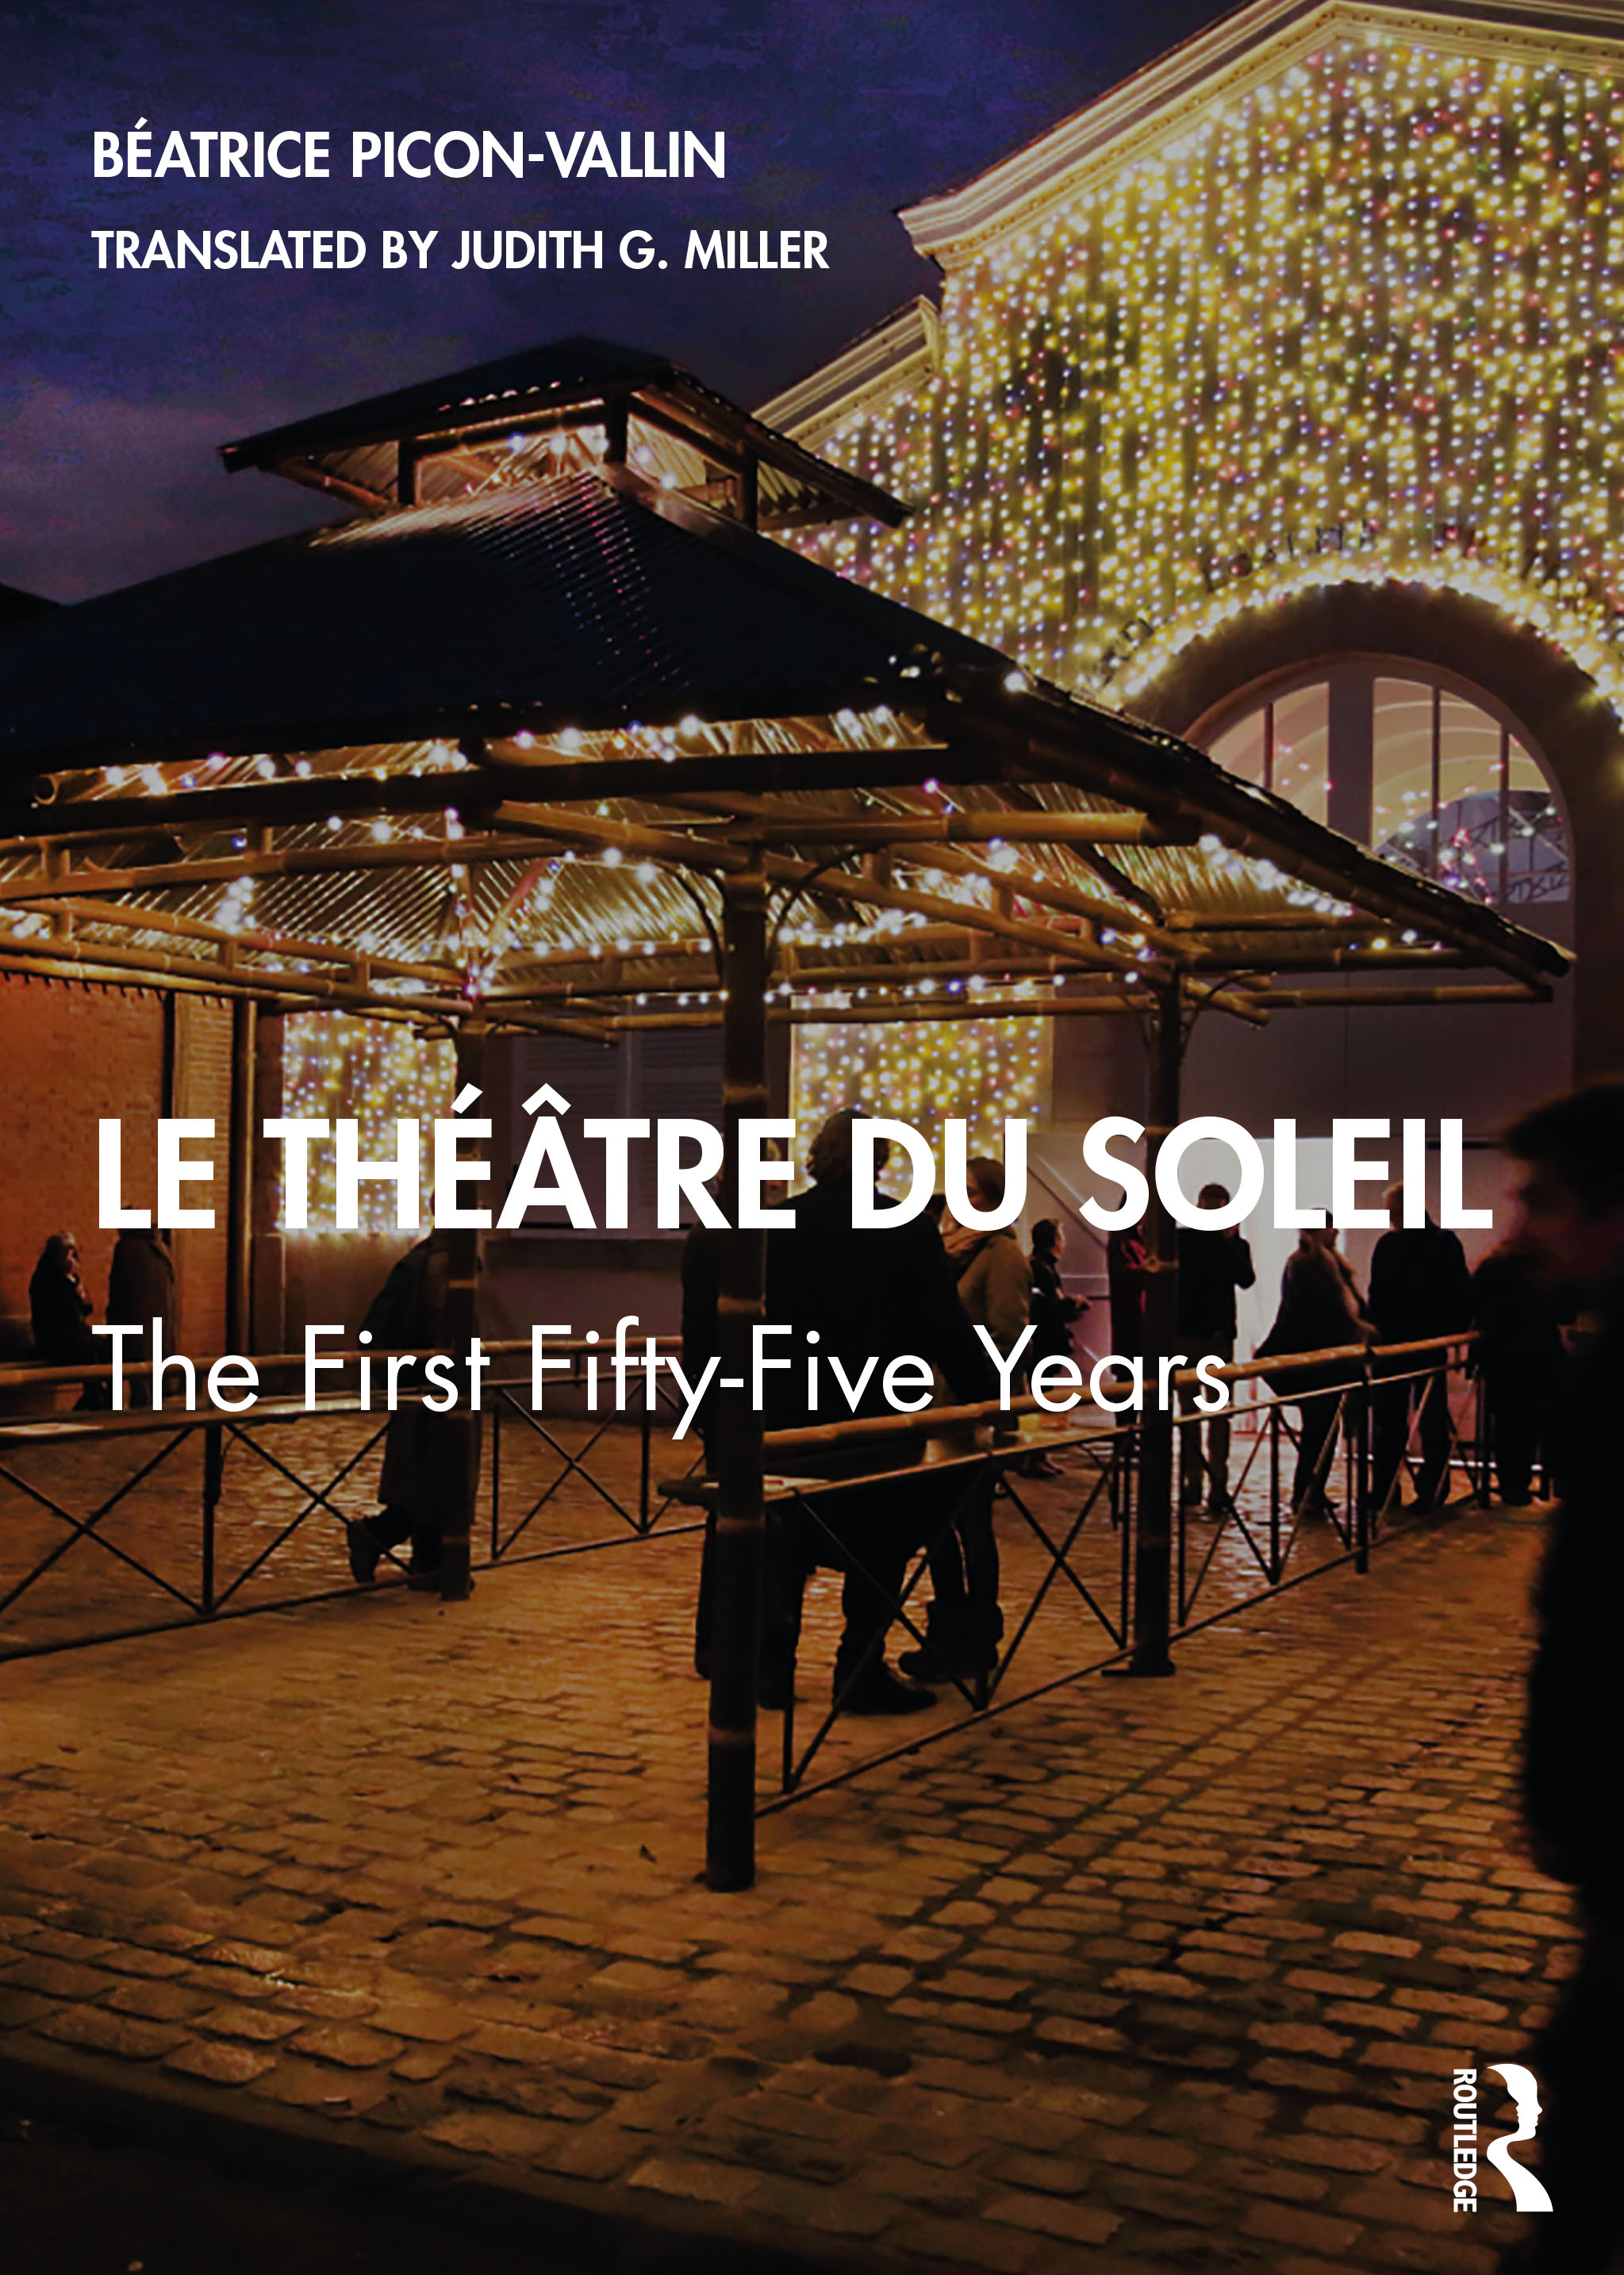 Le Théâtre du Soleil: The First Fifty-Five Years book cover